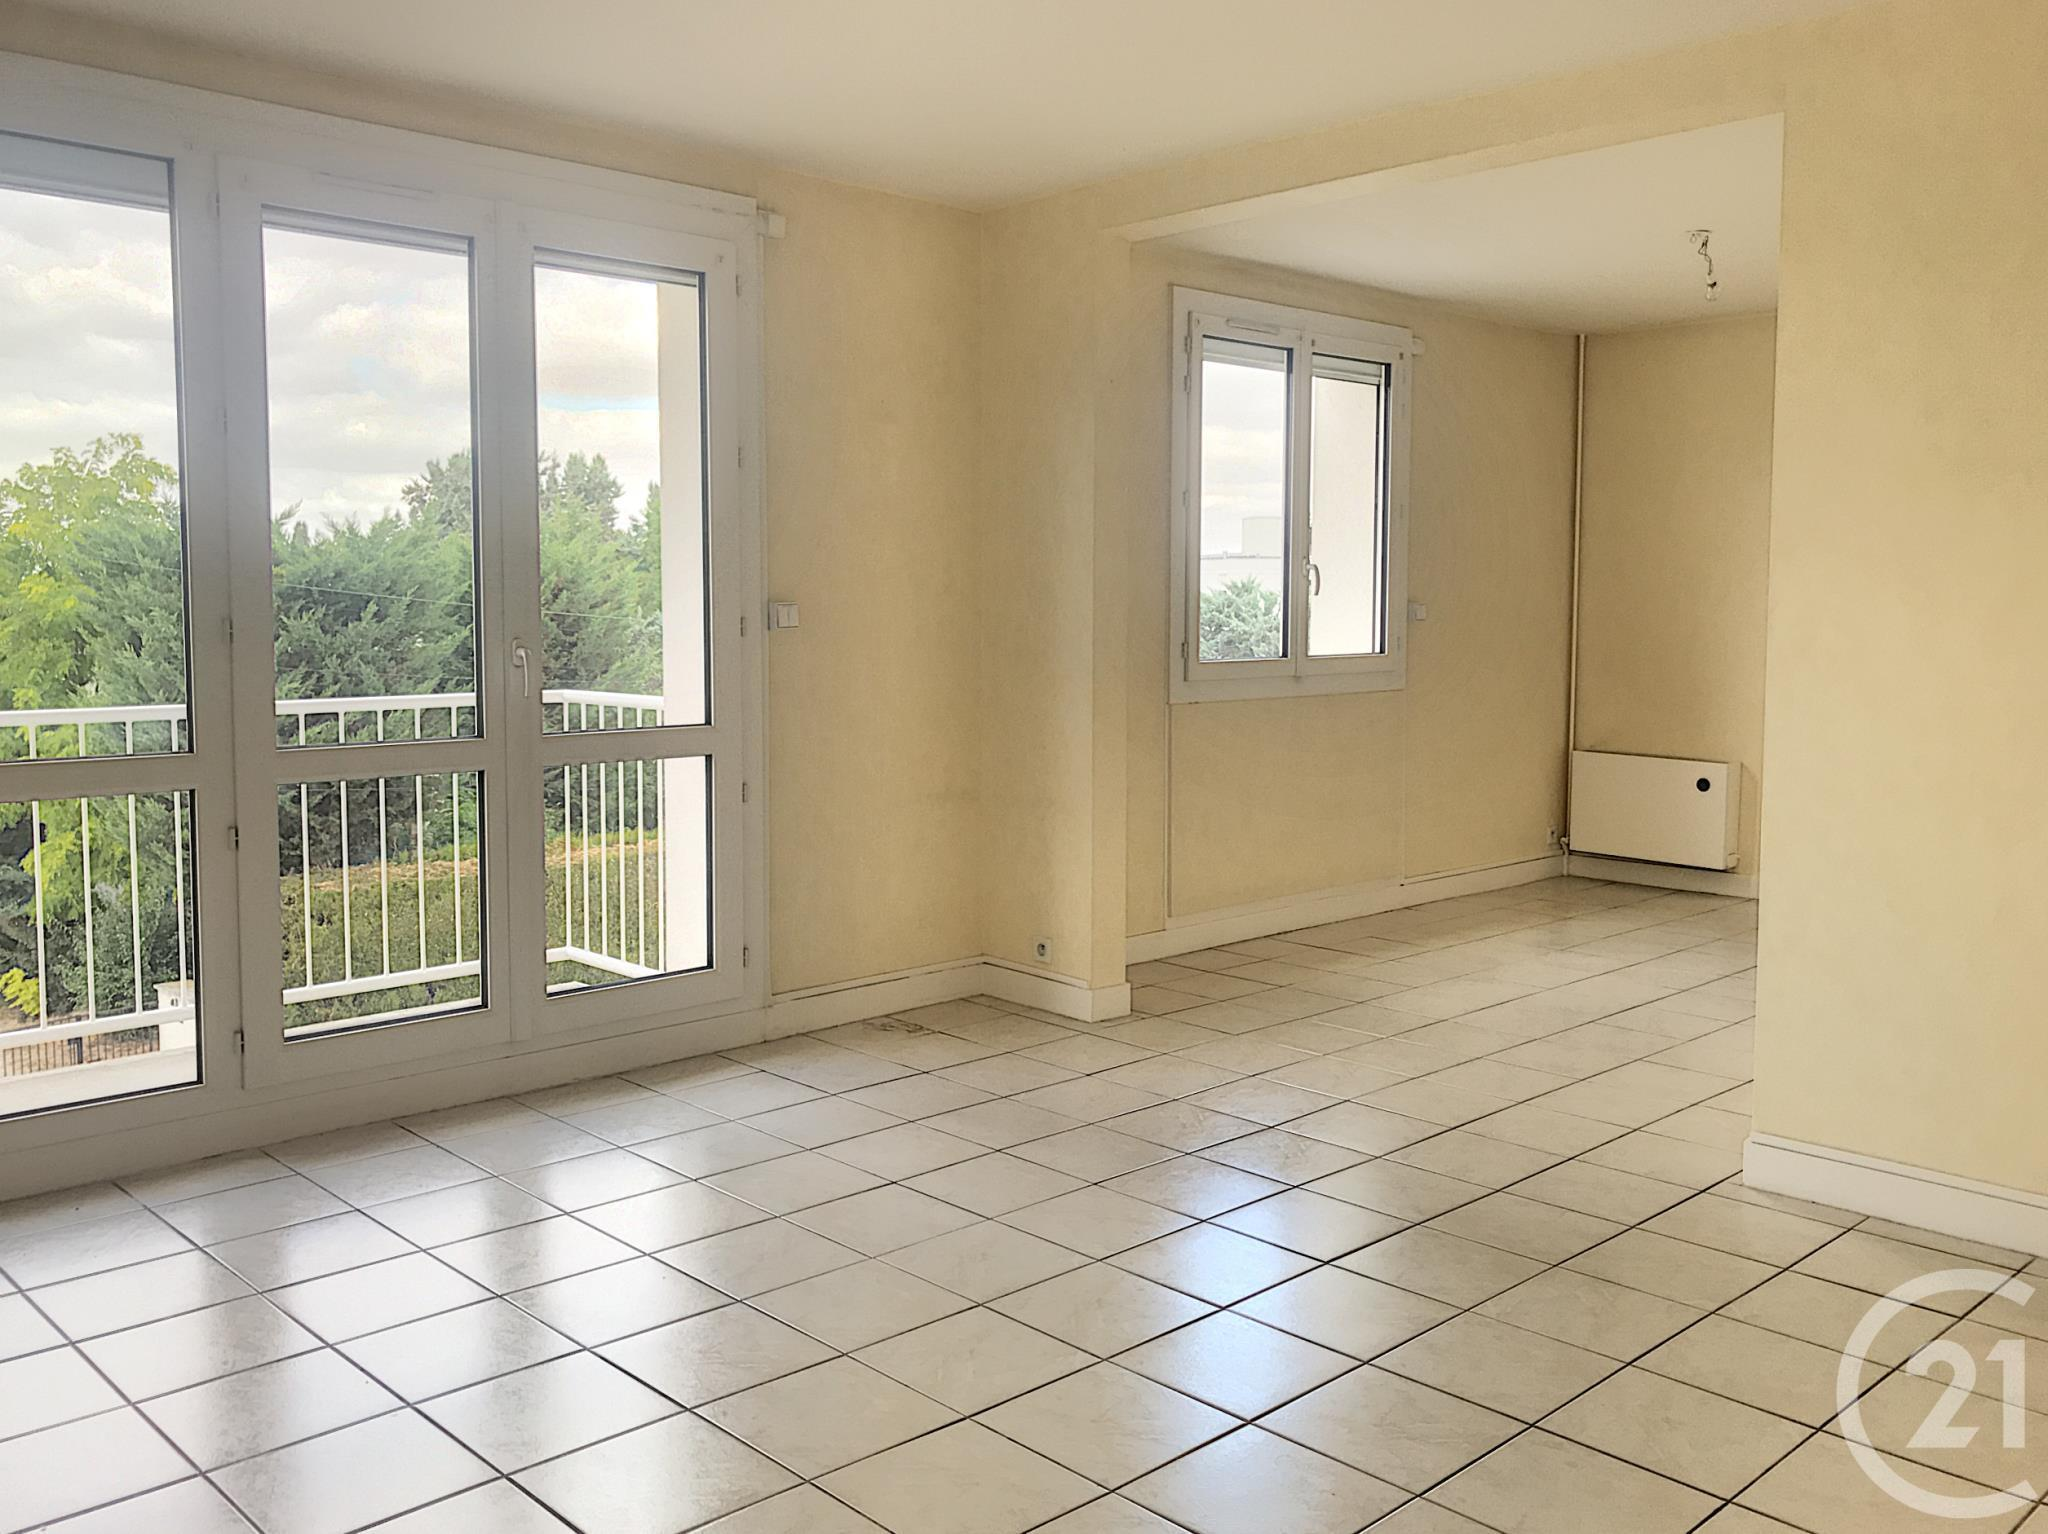 Appartement F4 à louer - 4 pièces - 79 m2 - TROYES - 10 - CHAMPAGNE-ARDENNE